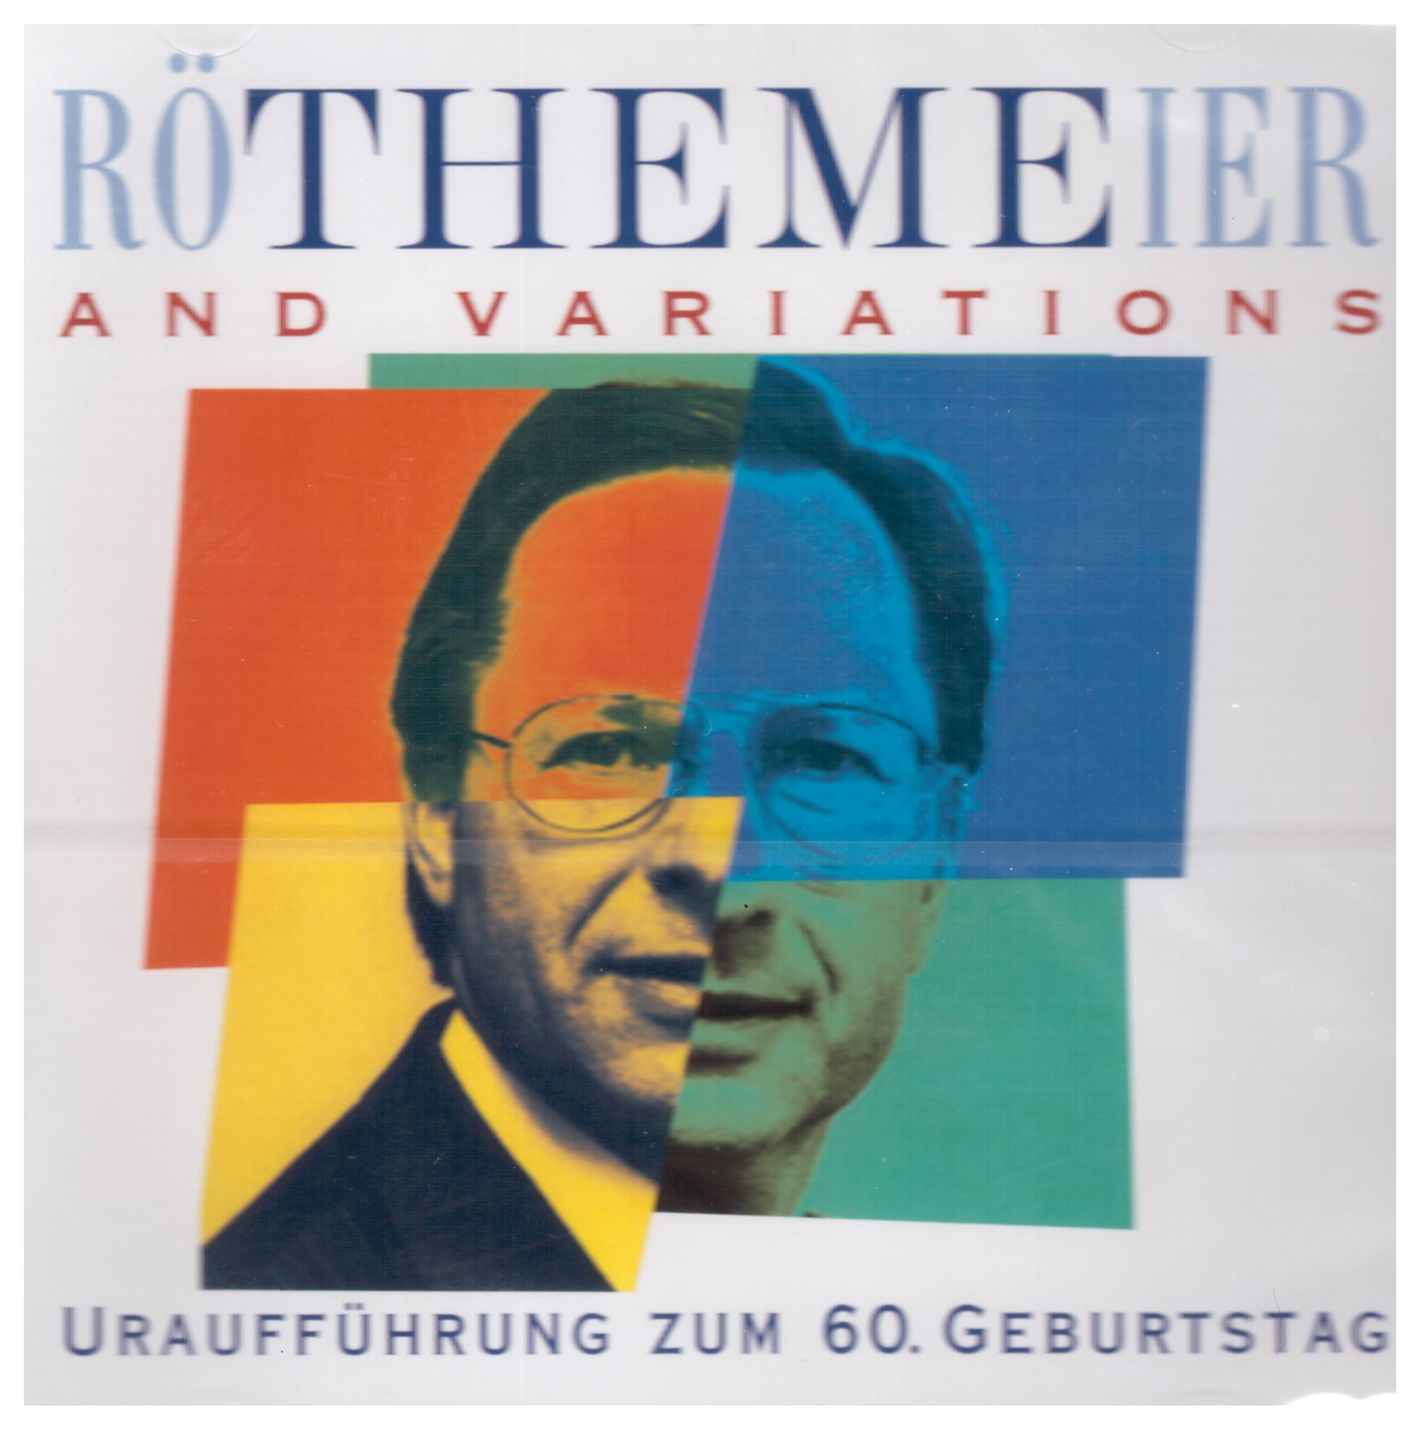 RöTHEMEier and Variations